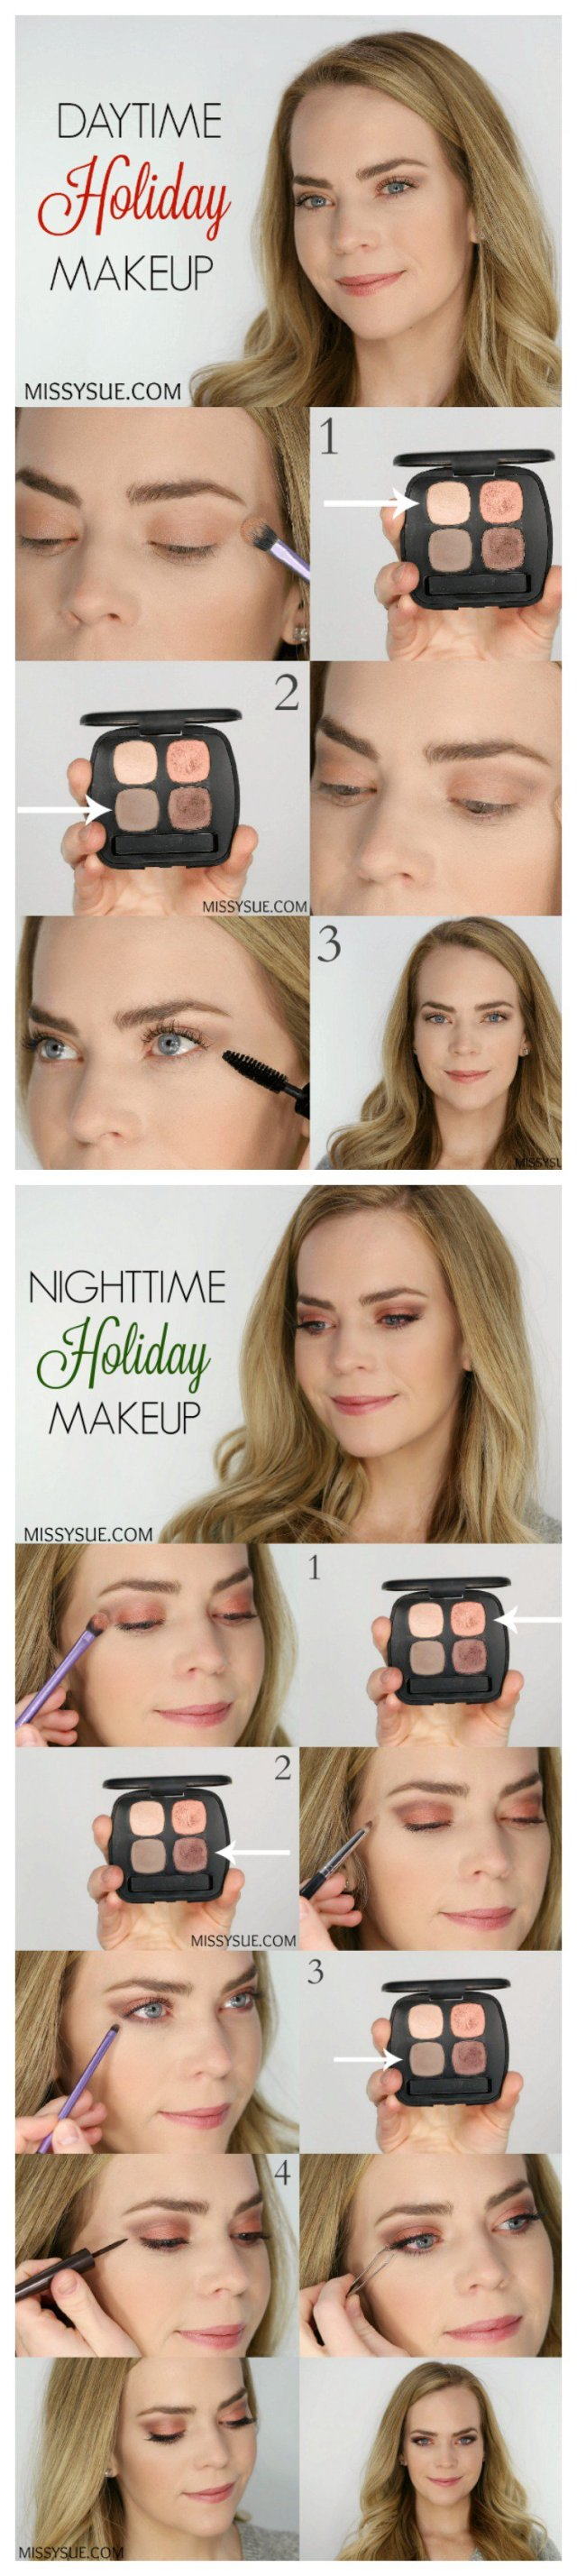 Daily Makeup Ideas